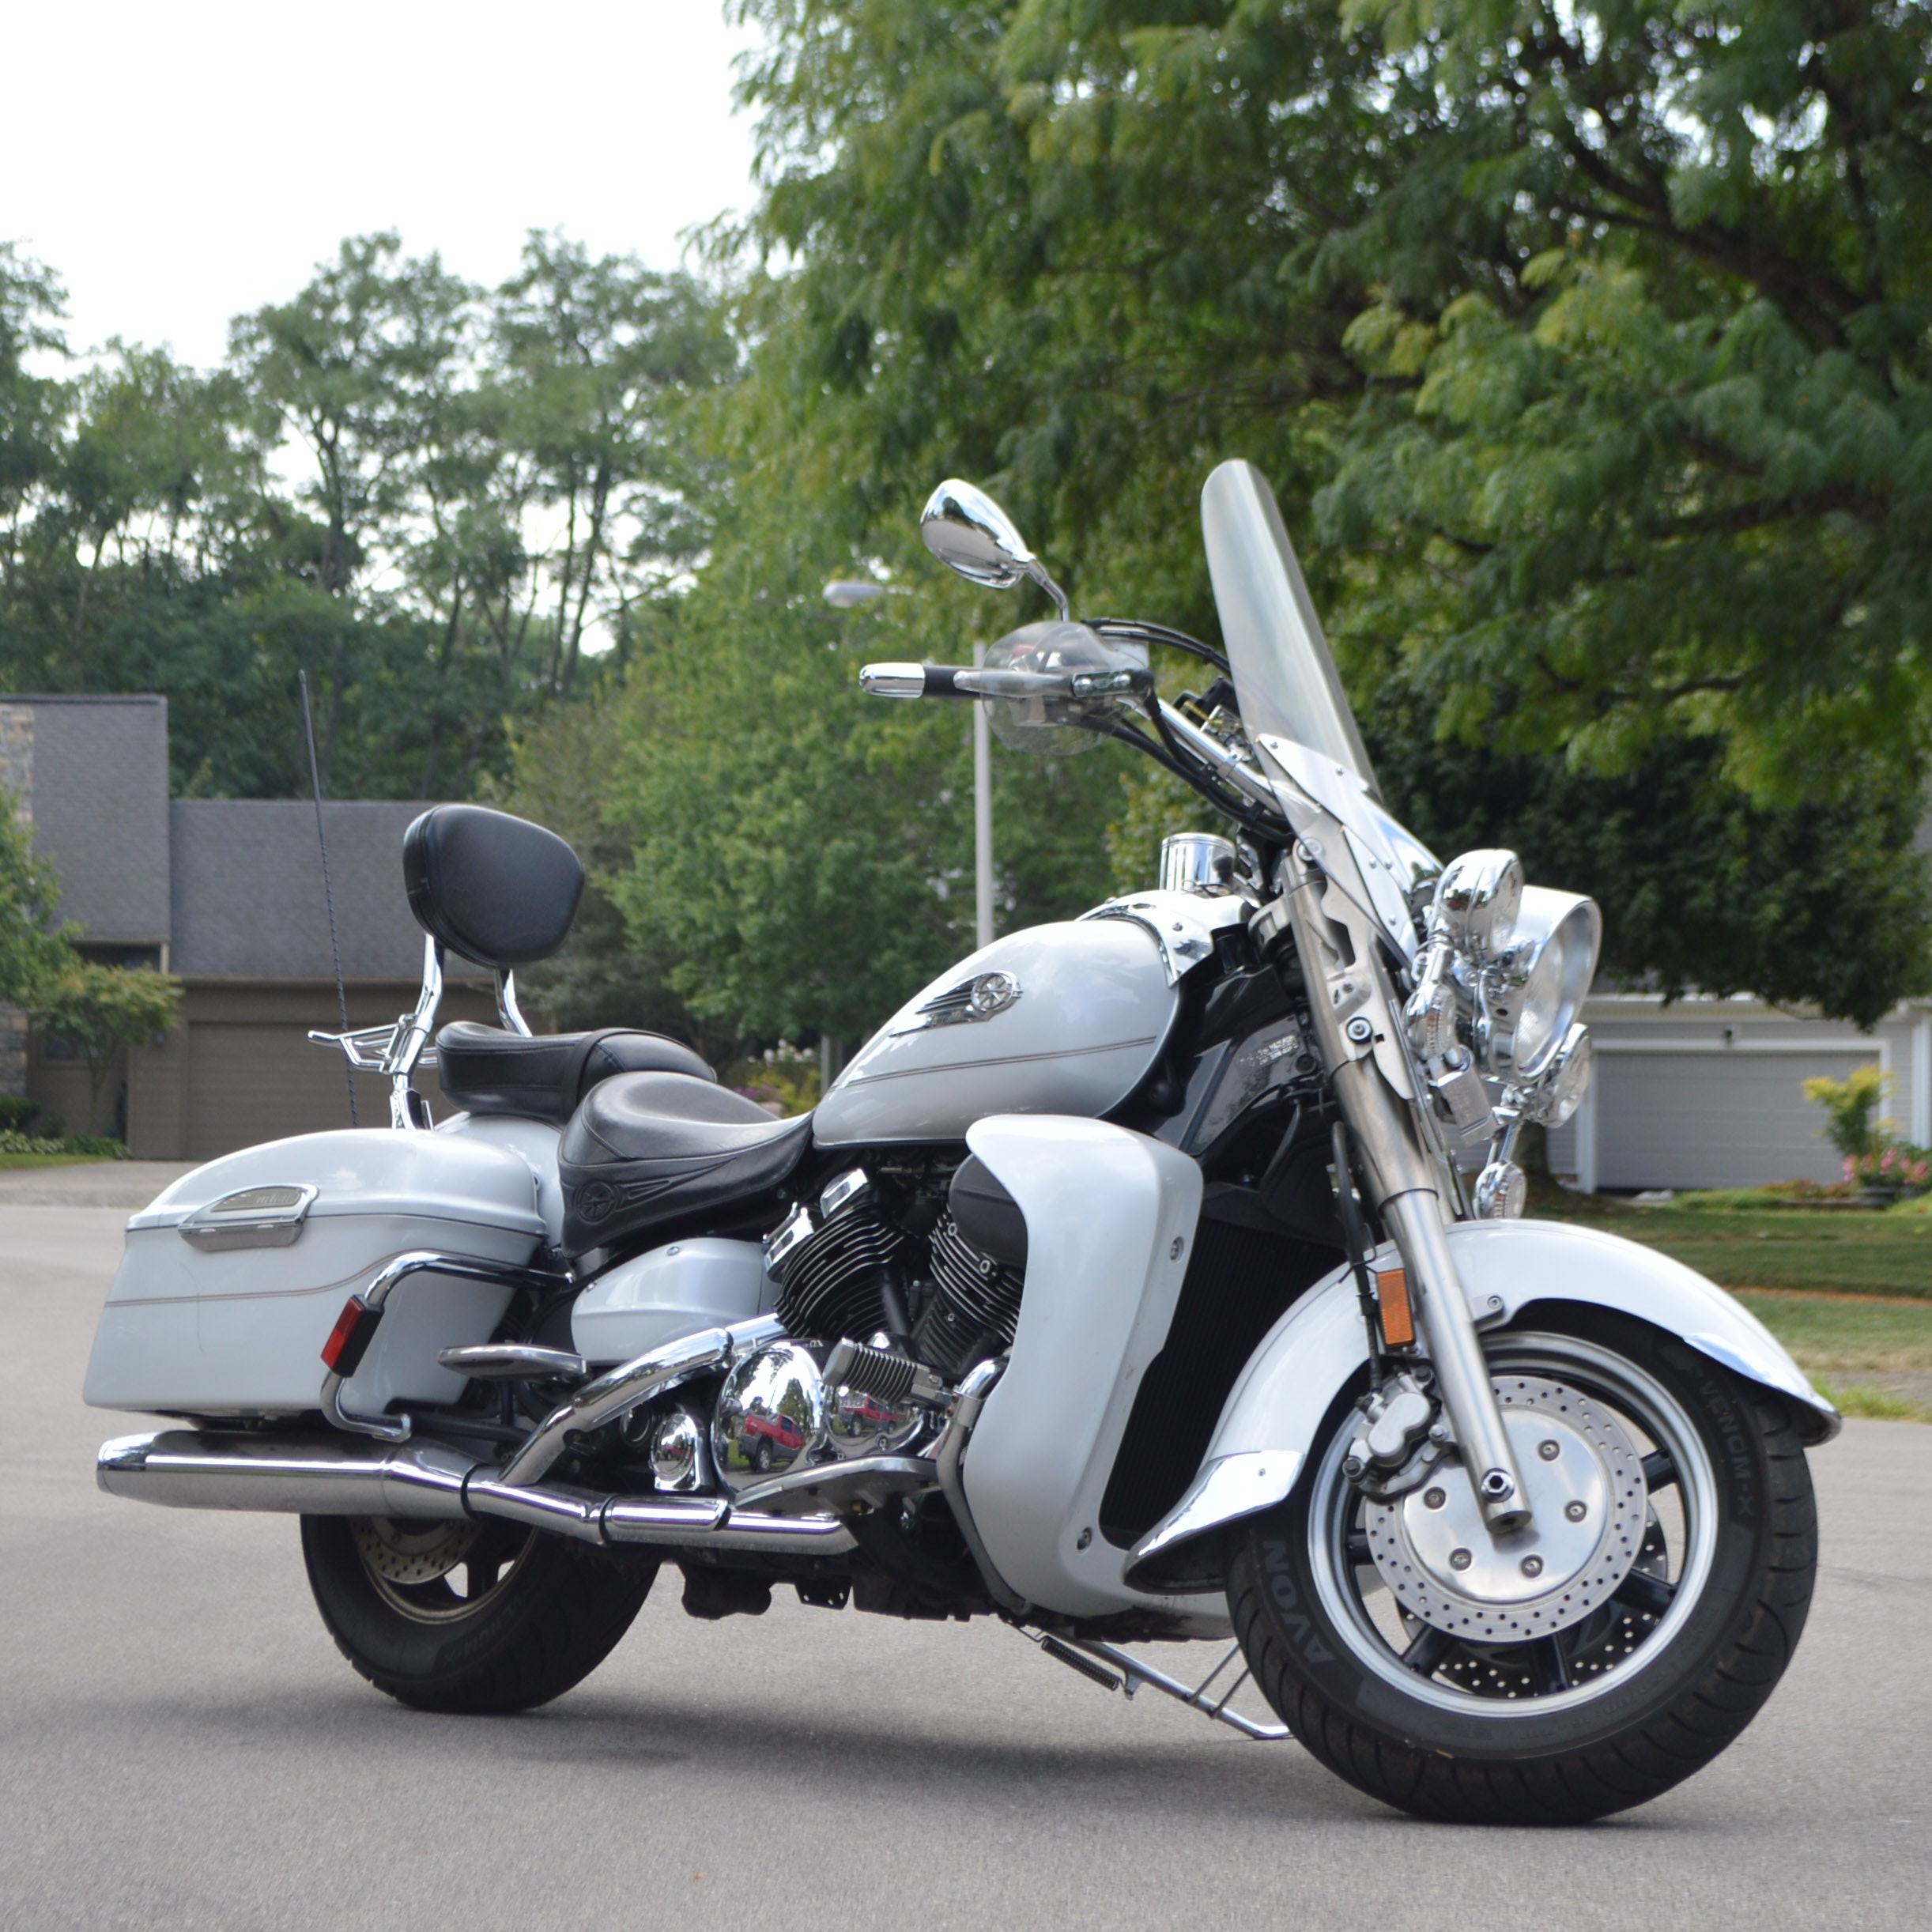 2006 Yamaha Royal Star Tour Deluxe Motorcycle